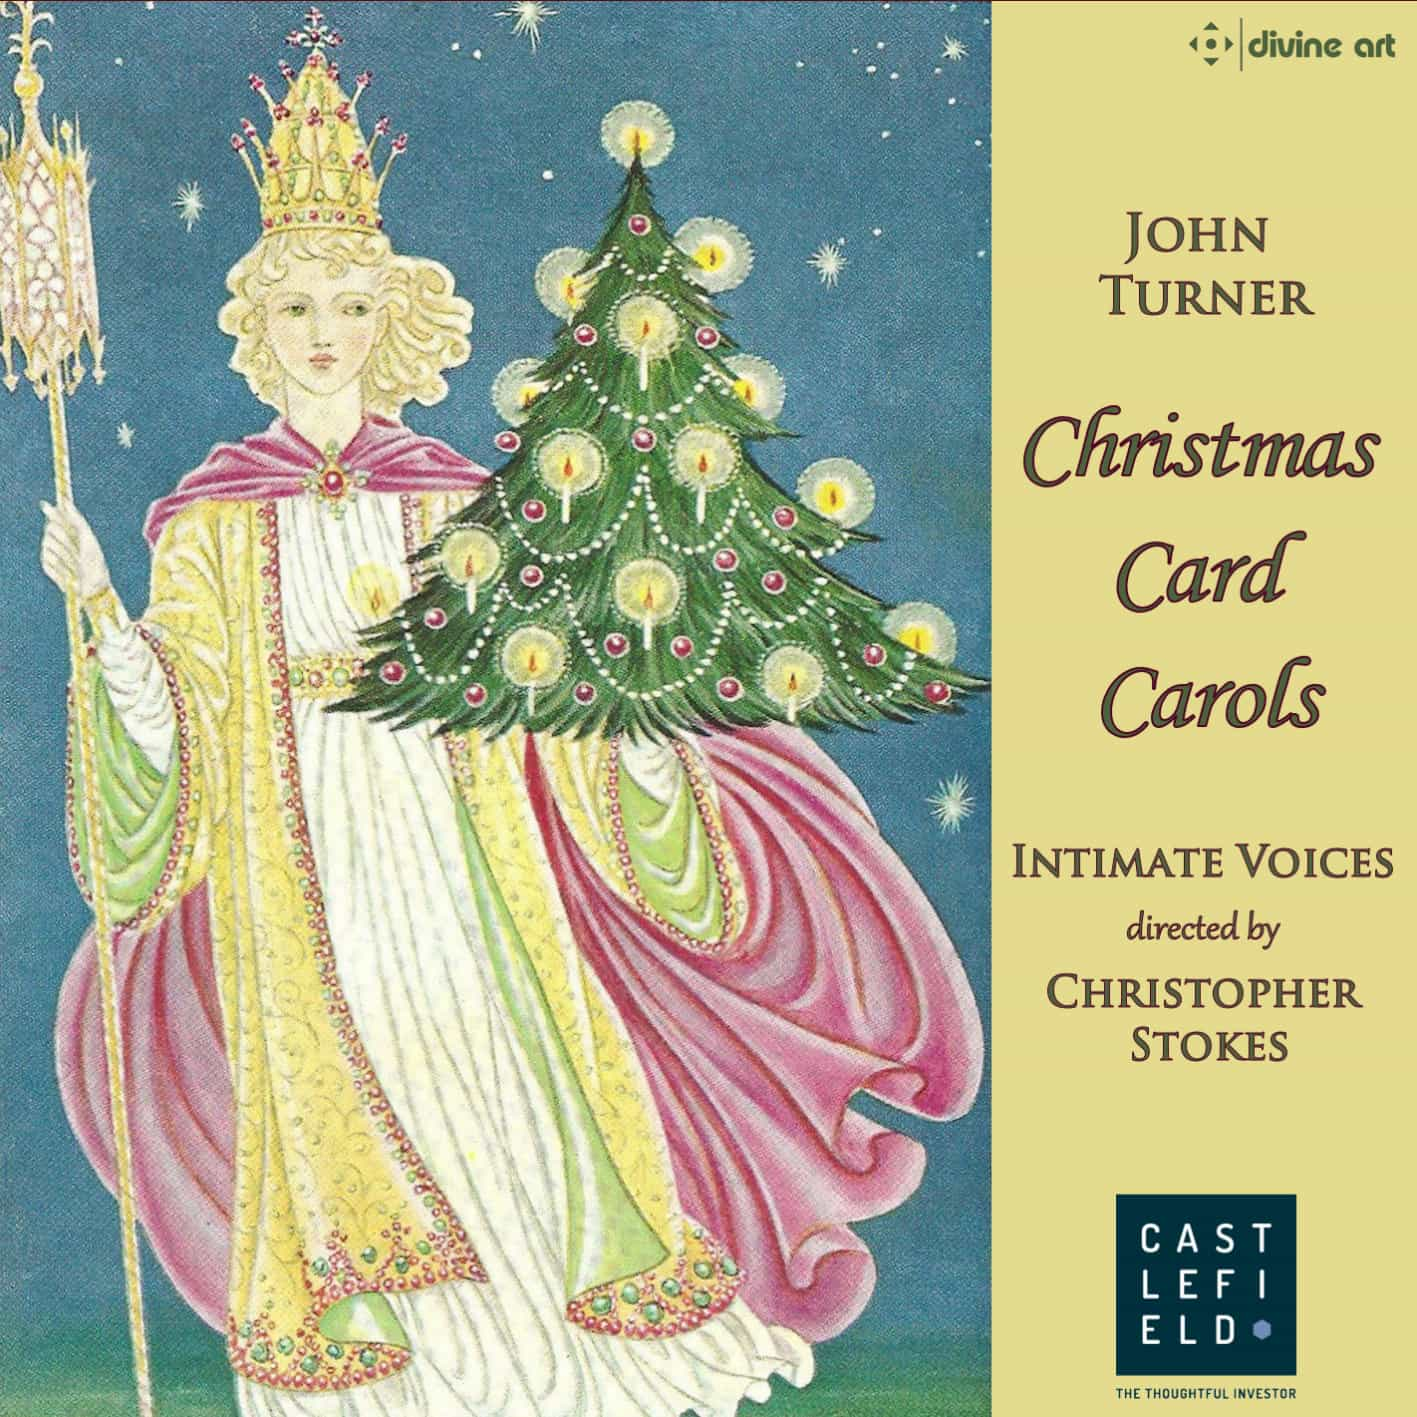 Christmas Card carols | Divine Art Recordings